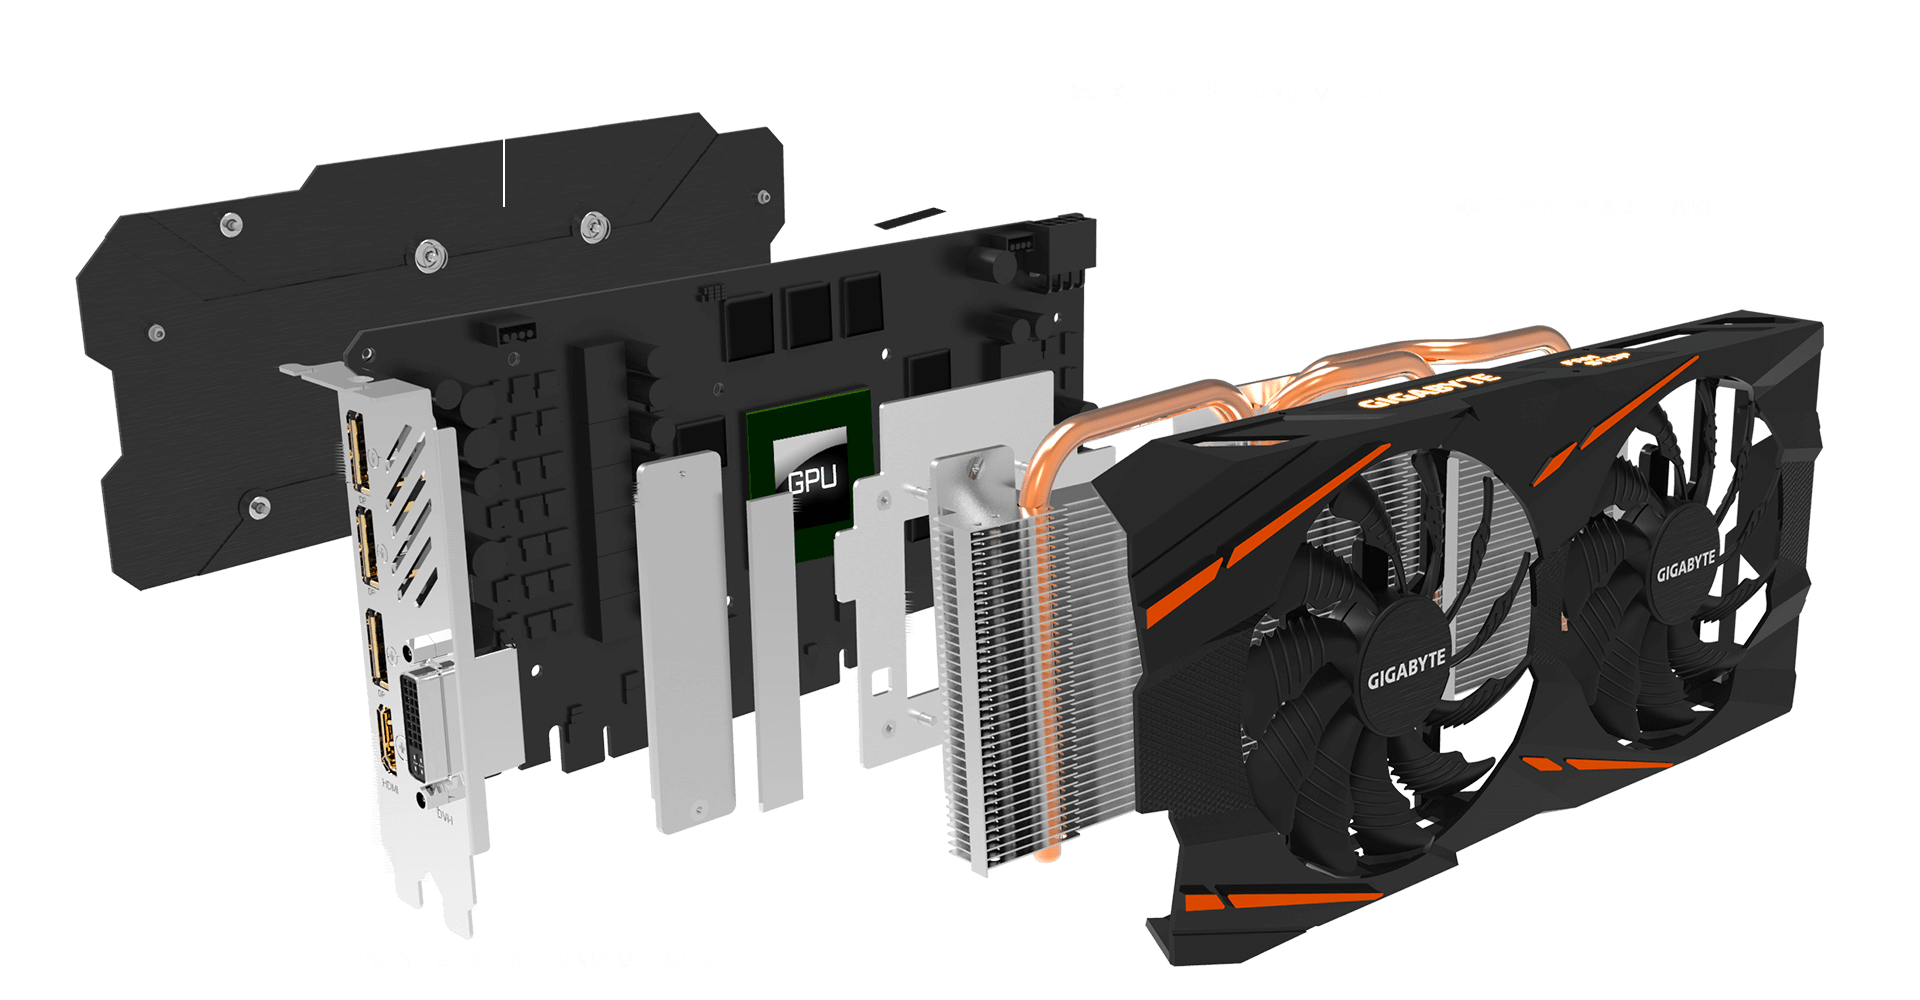 gigabyte radeon rx 590 facing to the right with all its pieces detaches and floating behind it, there is text from right to left indicating each piece: Two 80mm blade fans, front-side cooling module, GPU and back-side cooling module